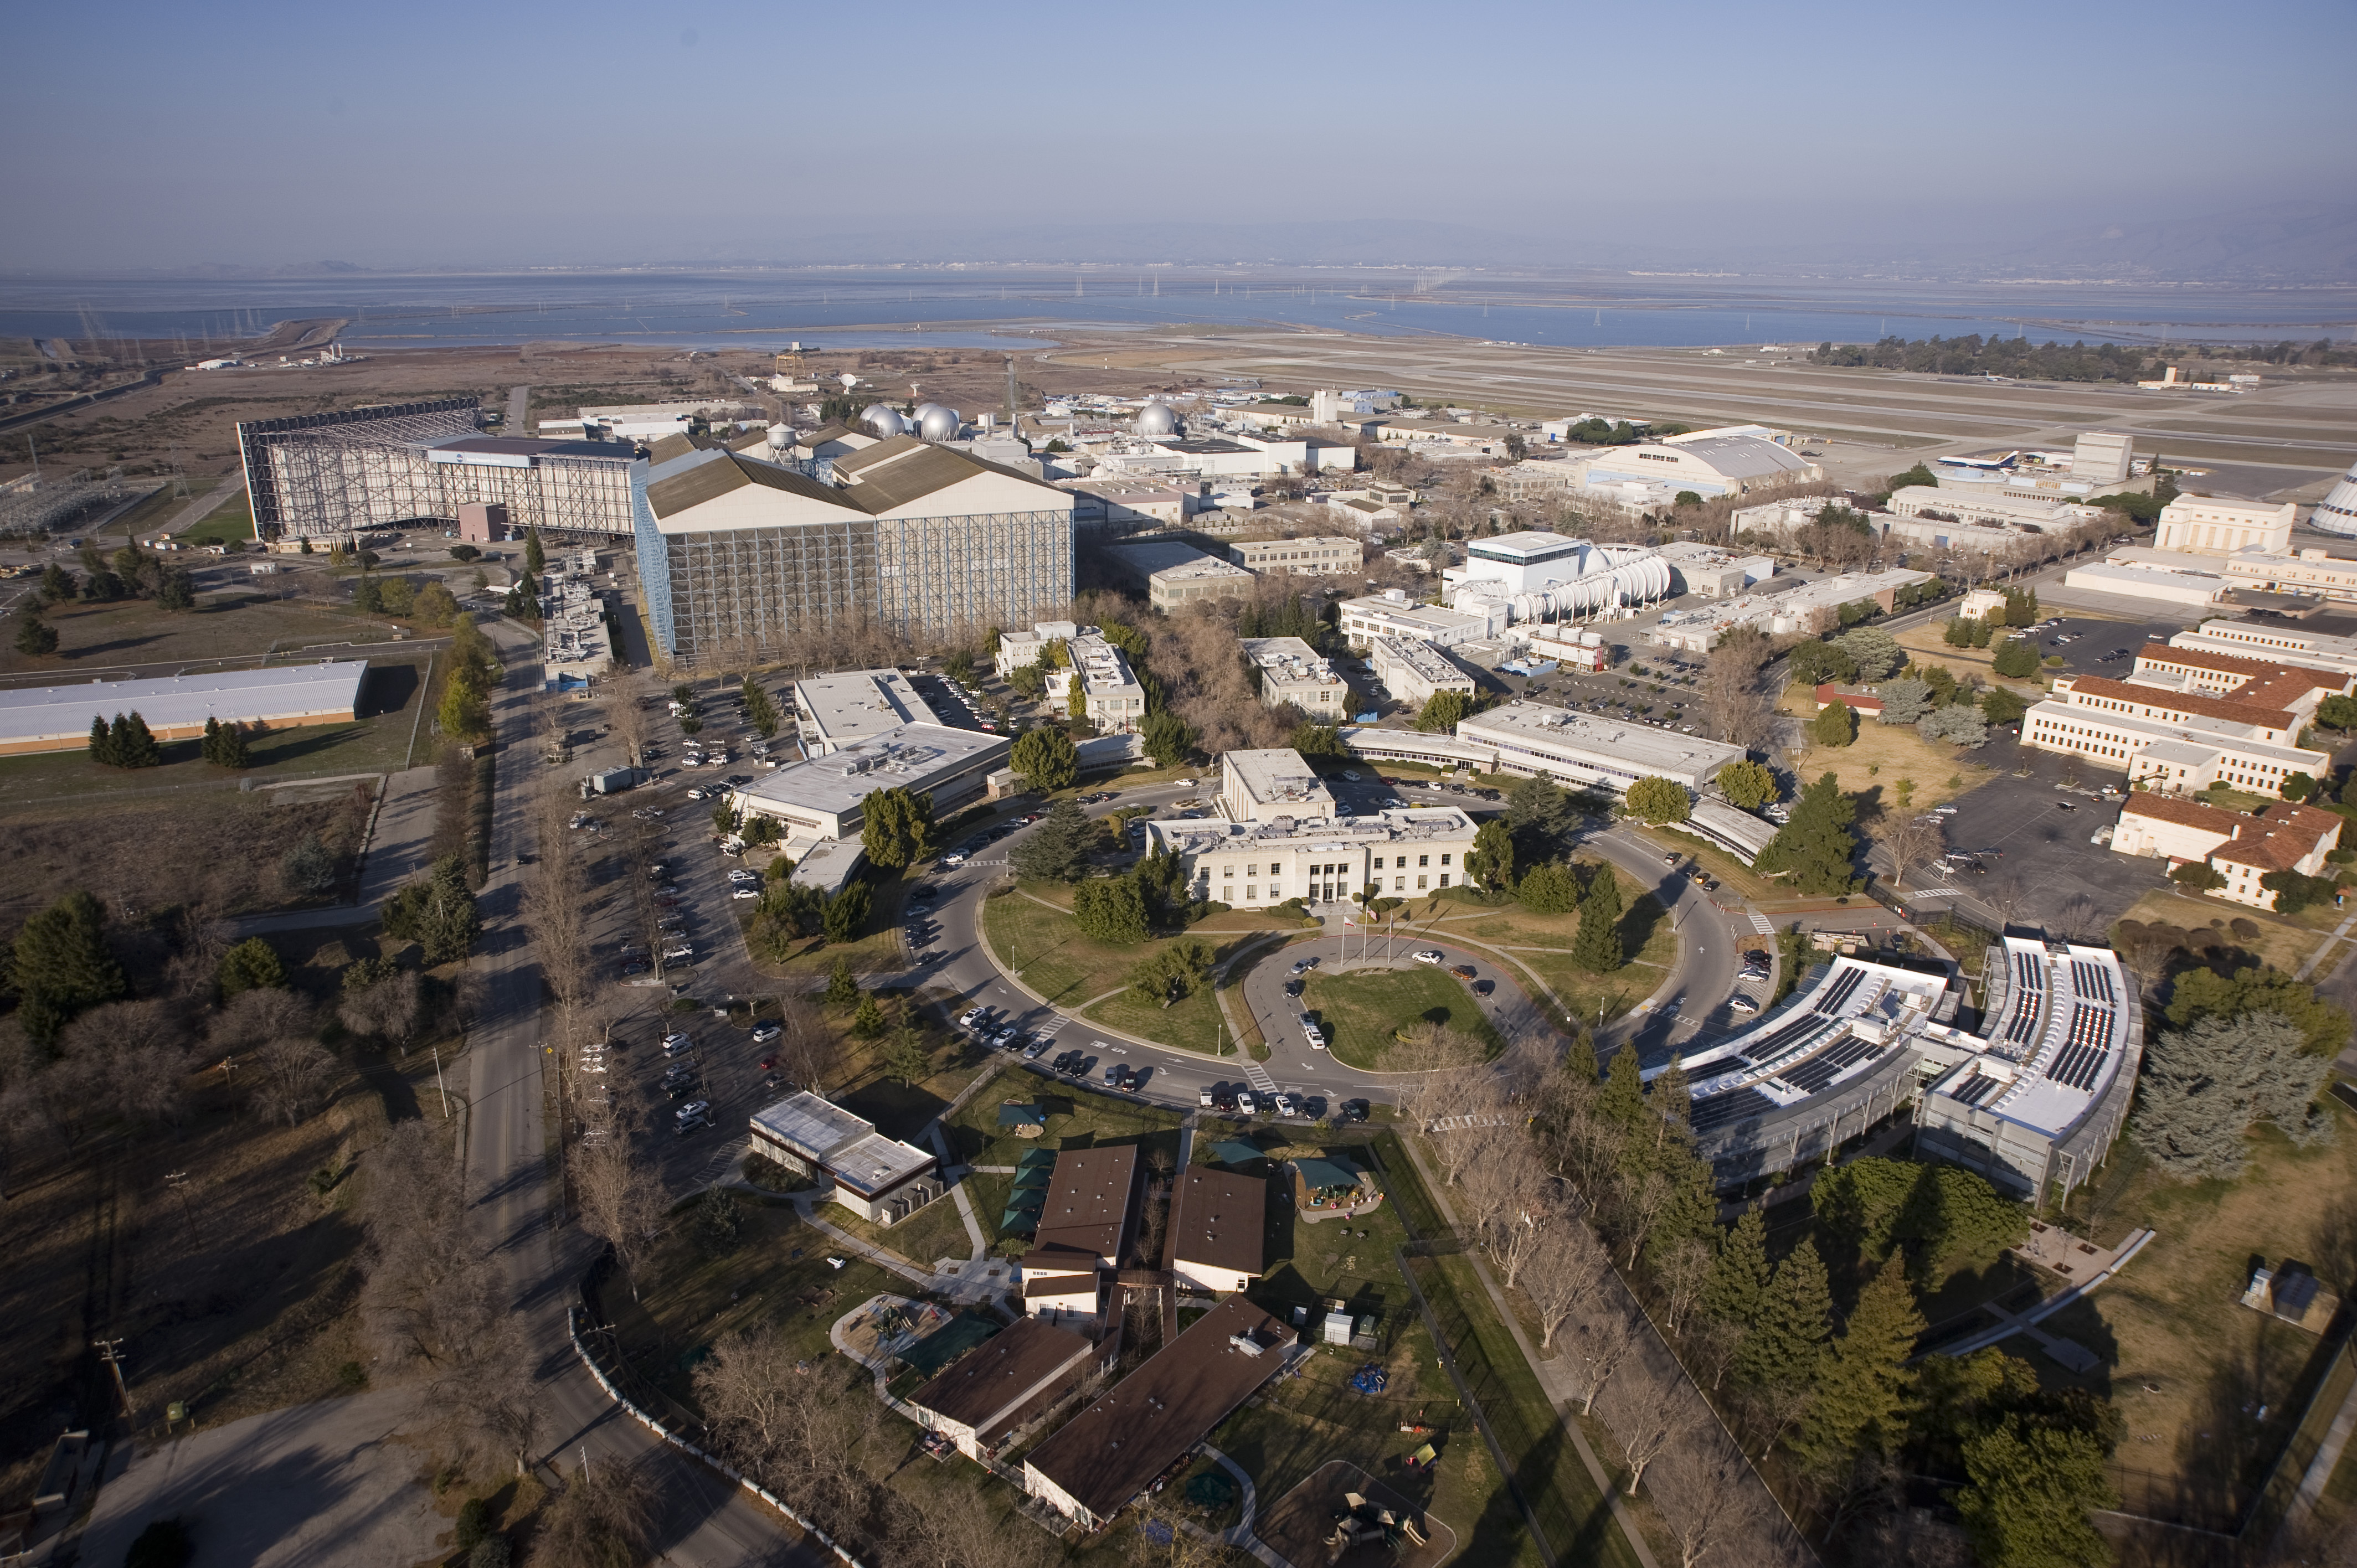 Ames Research Center Overview | NASA